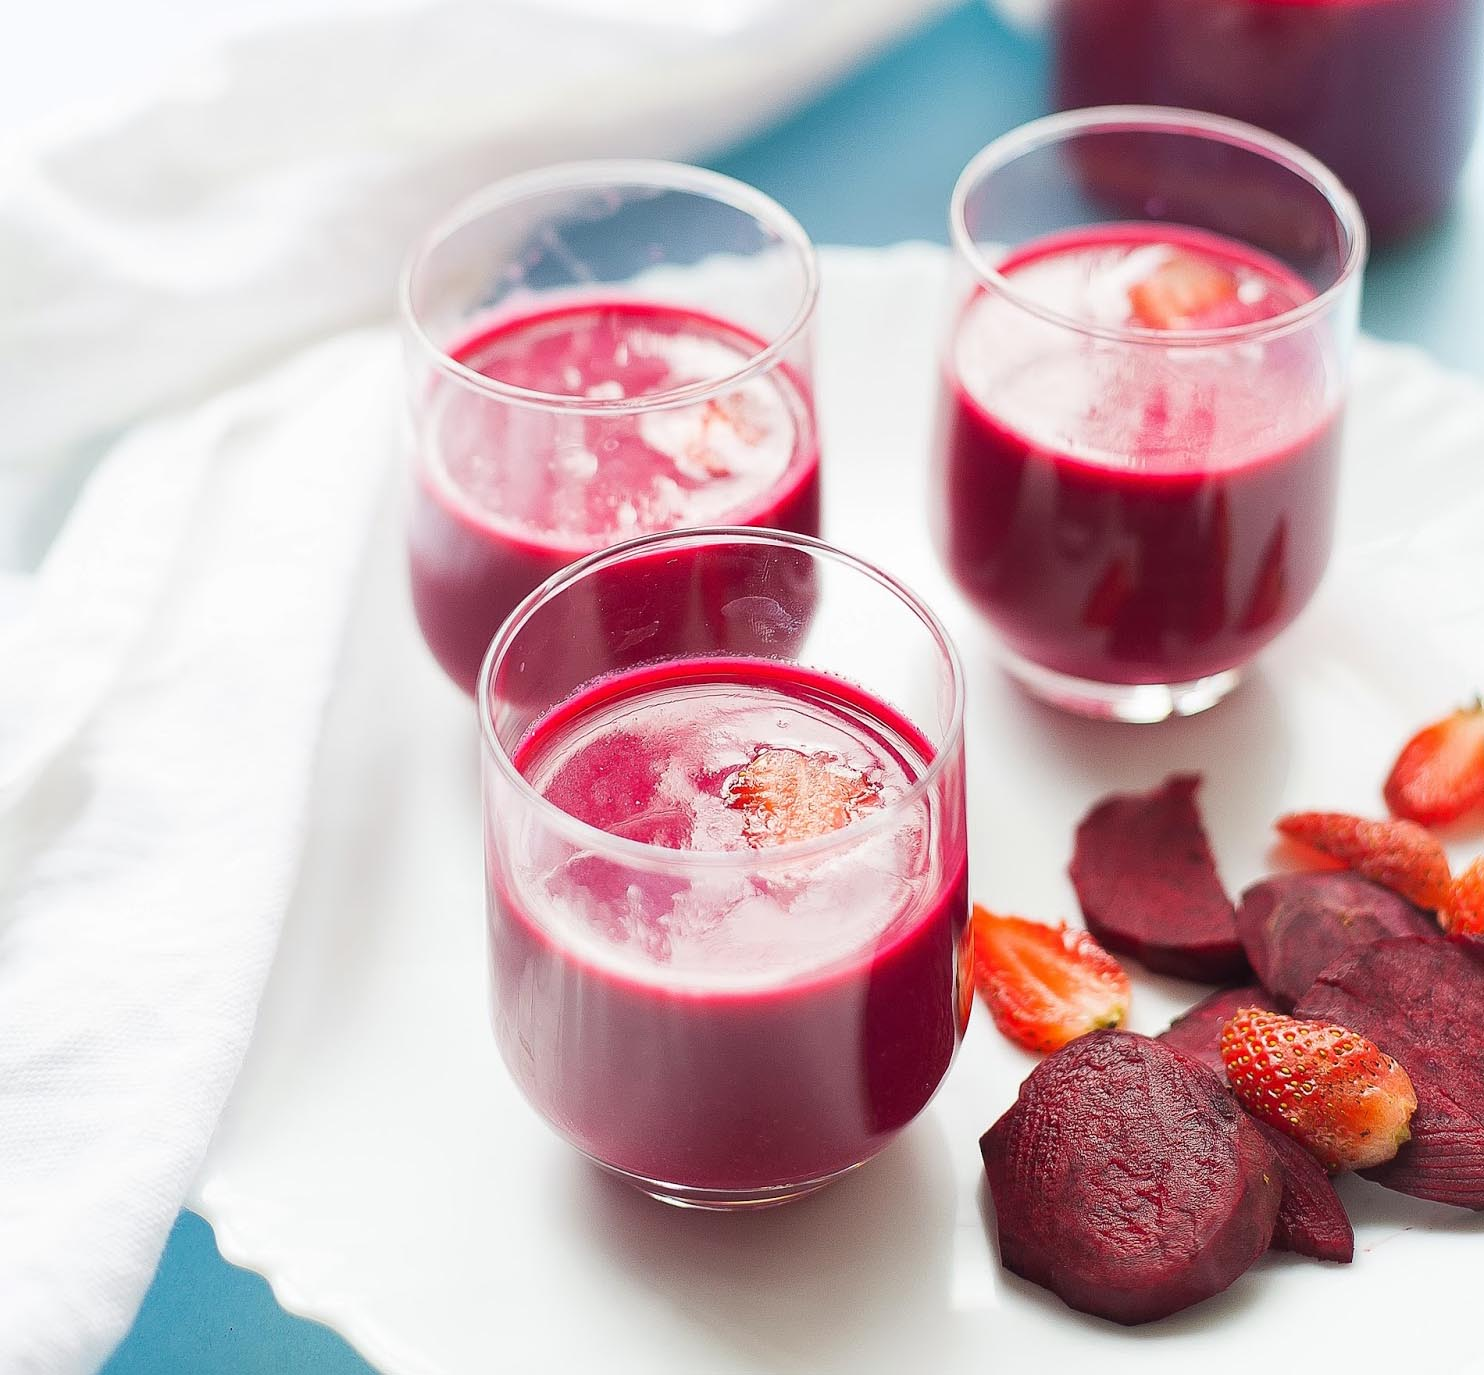 Beet and Strawberry Smoothie